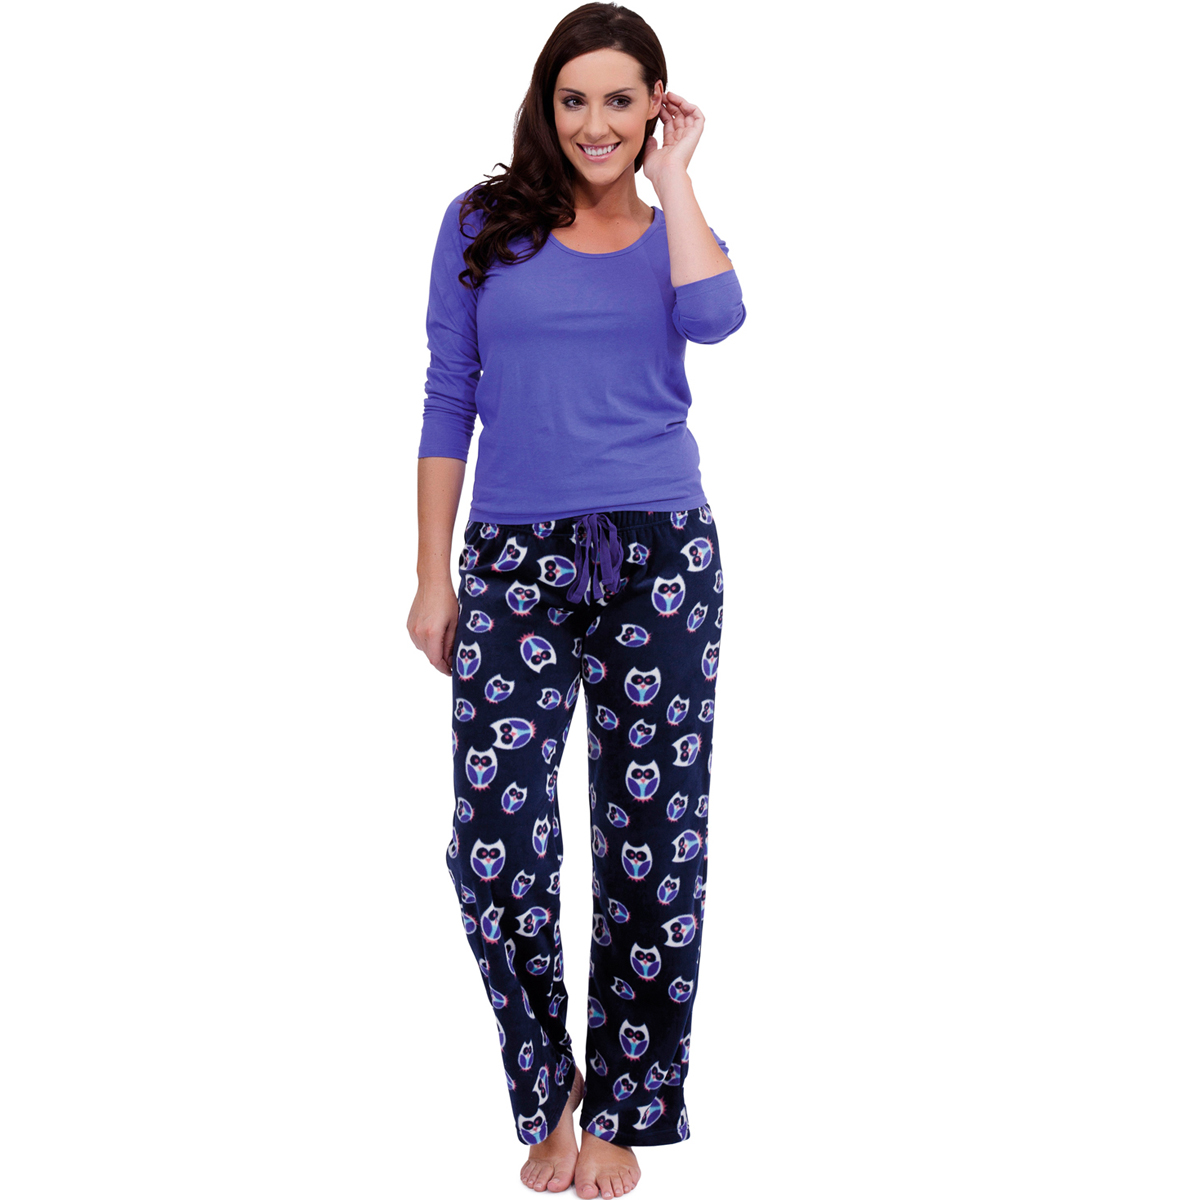 MH-RITA Winter Pajama Sets For Women Thick Warm Flannel Pajamas Pants Cartoon Animal Pyjamas Long Sleeve Sleepwear Home Clothing Autumn,,Xl Comfortable to wear: Light and Comfort,Close to skin and litastmaterlo.gq comfortable to wear and touch with the good quality material.